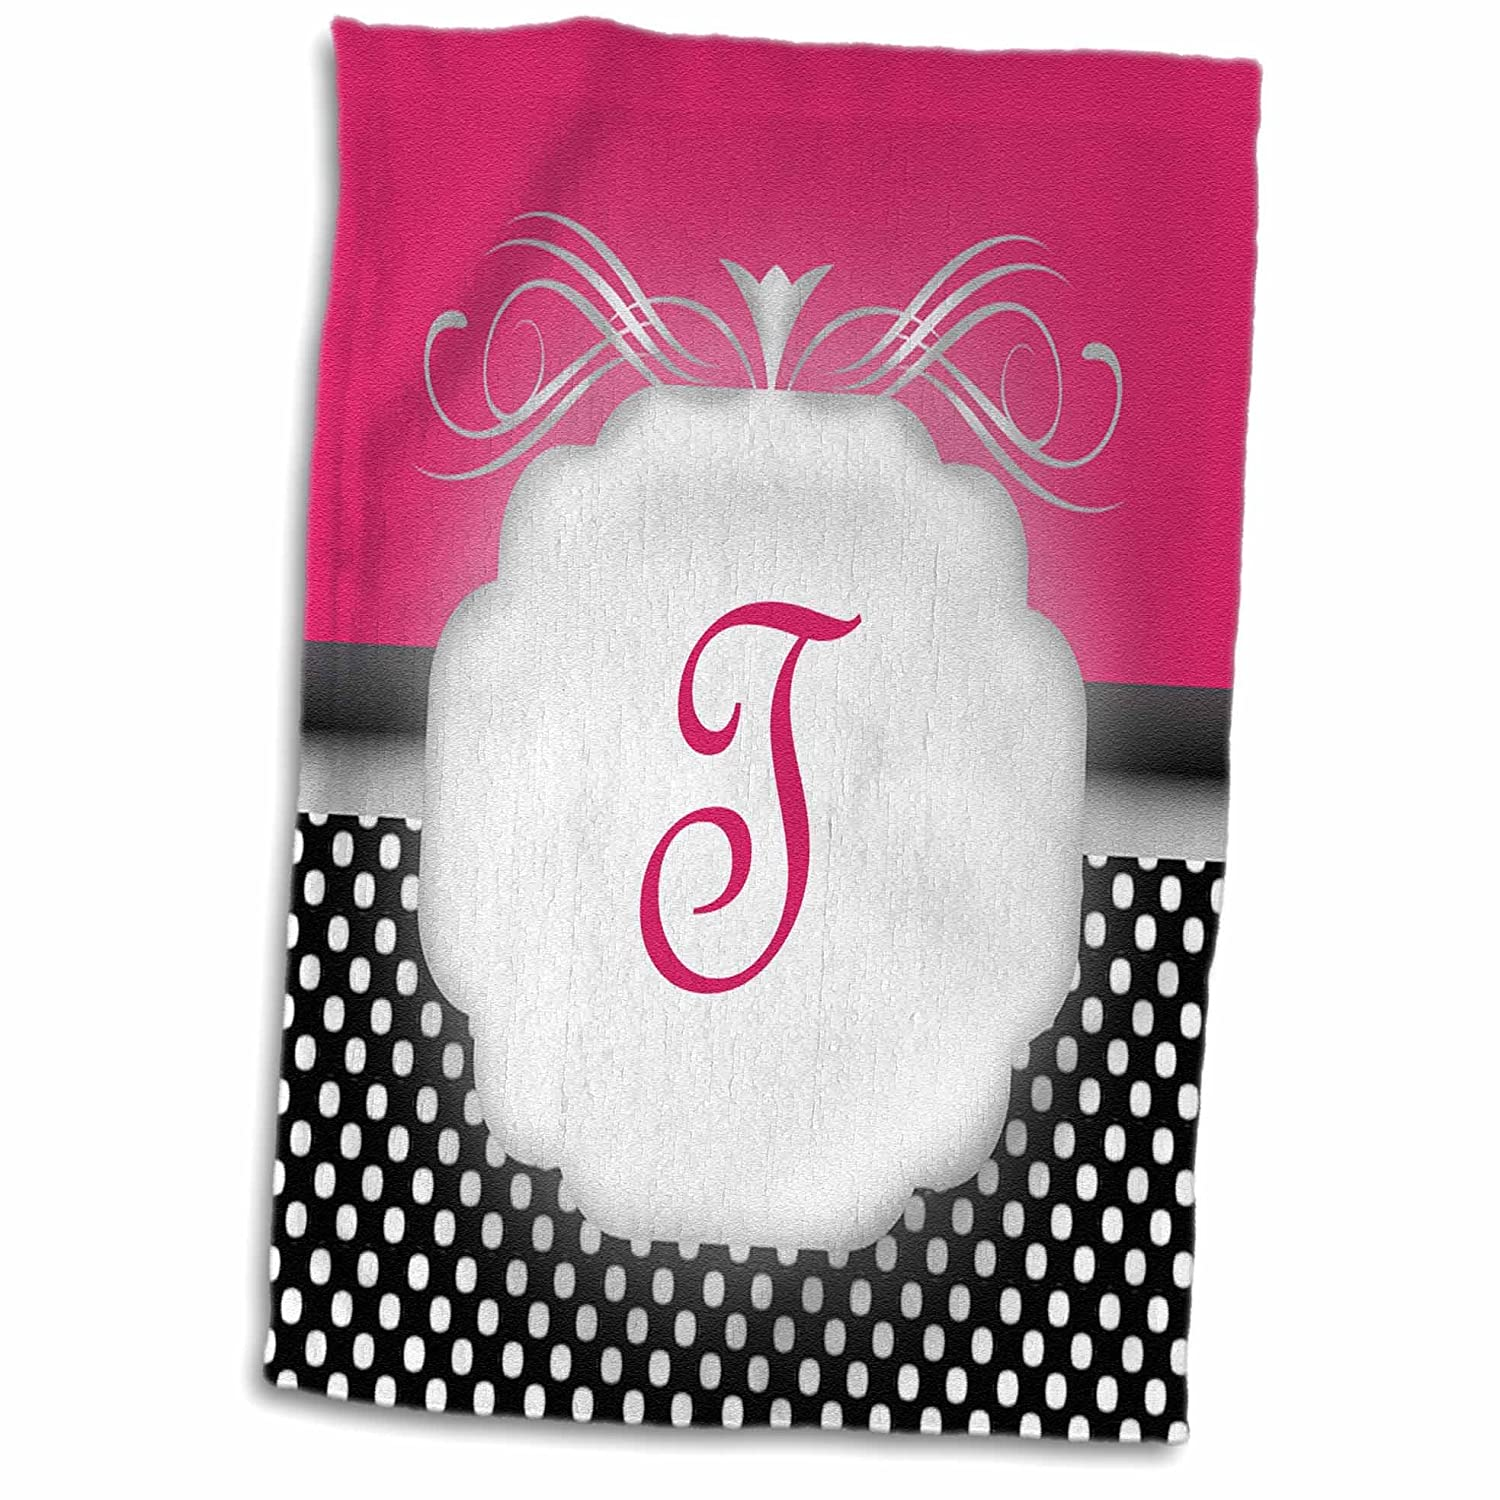 3D Rose Elegant Pink with Black and White Polka Dot Monogram Letter T Hand/Sports Towel 15 x 22